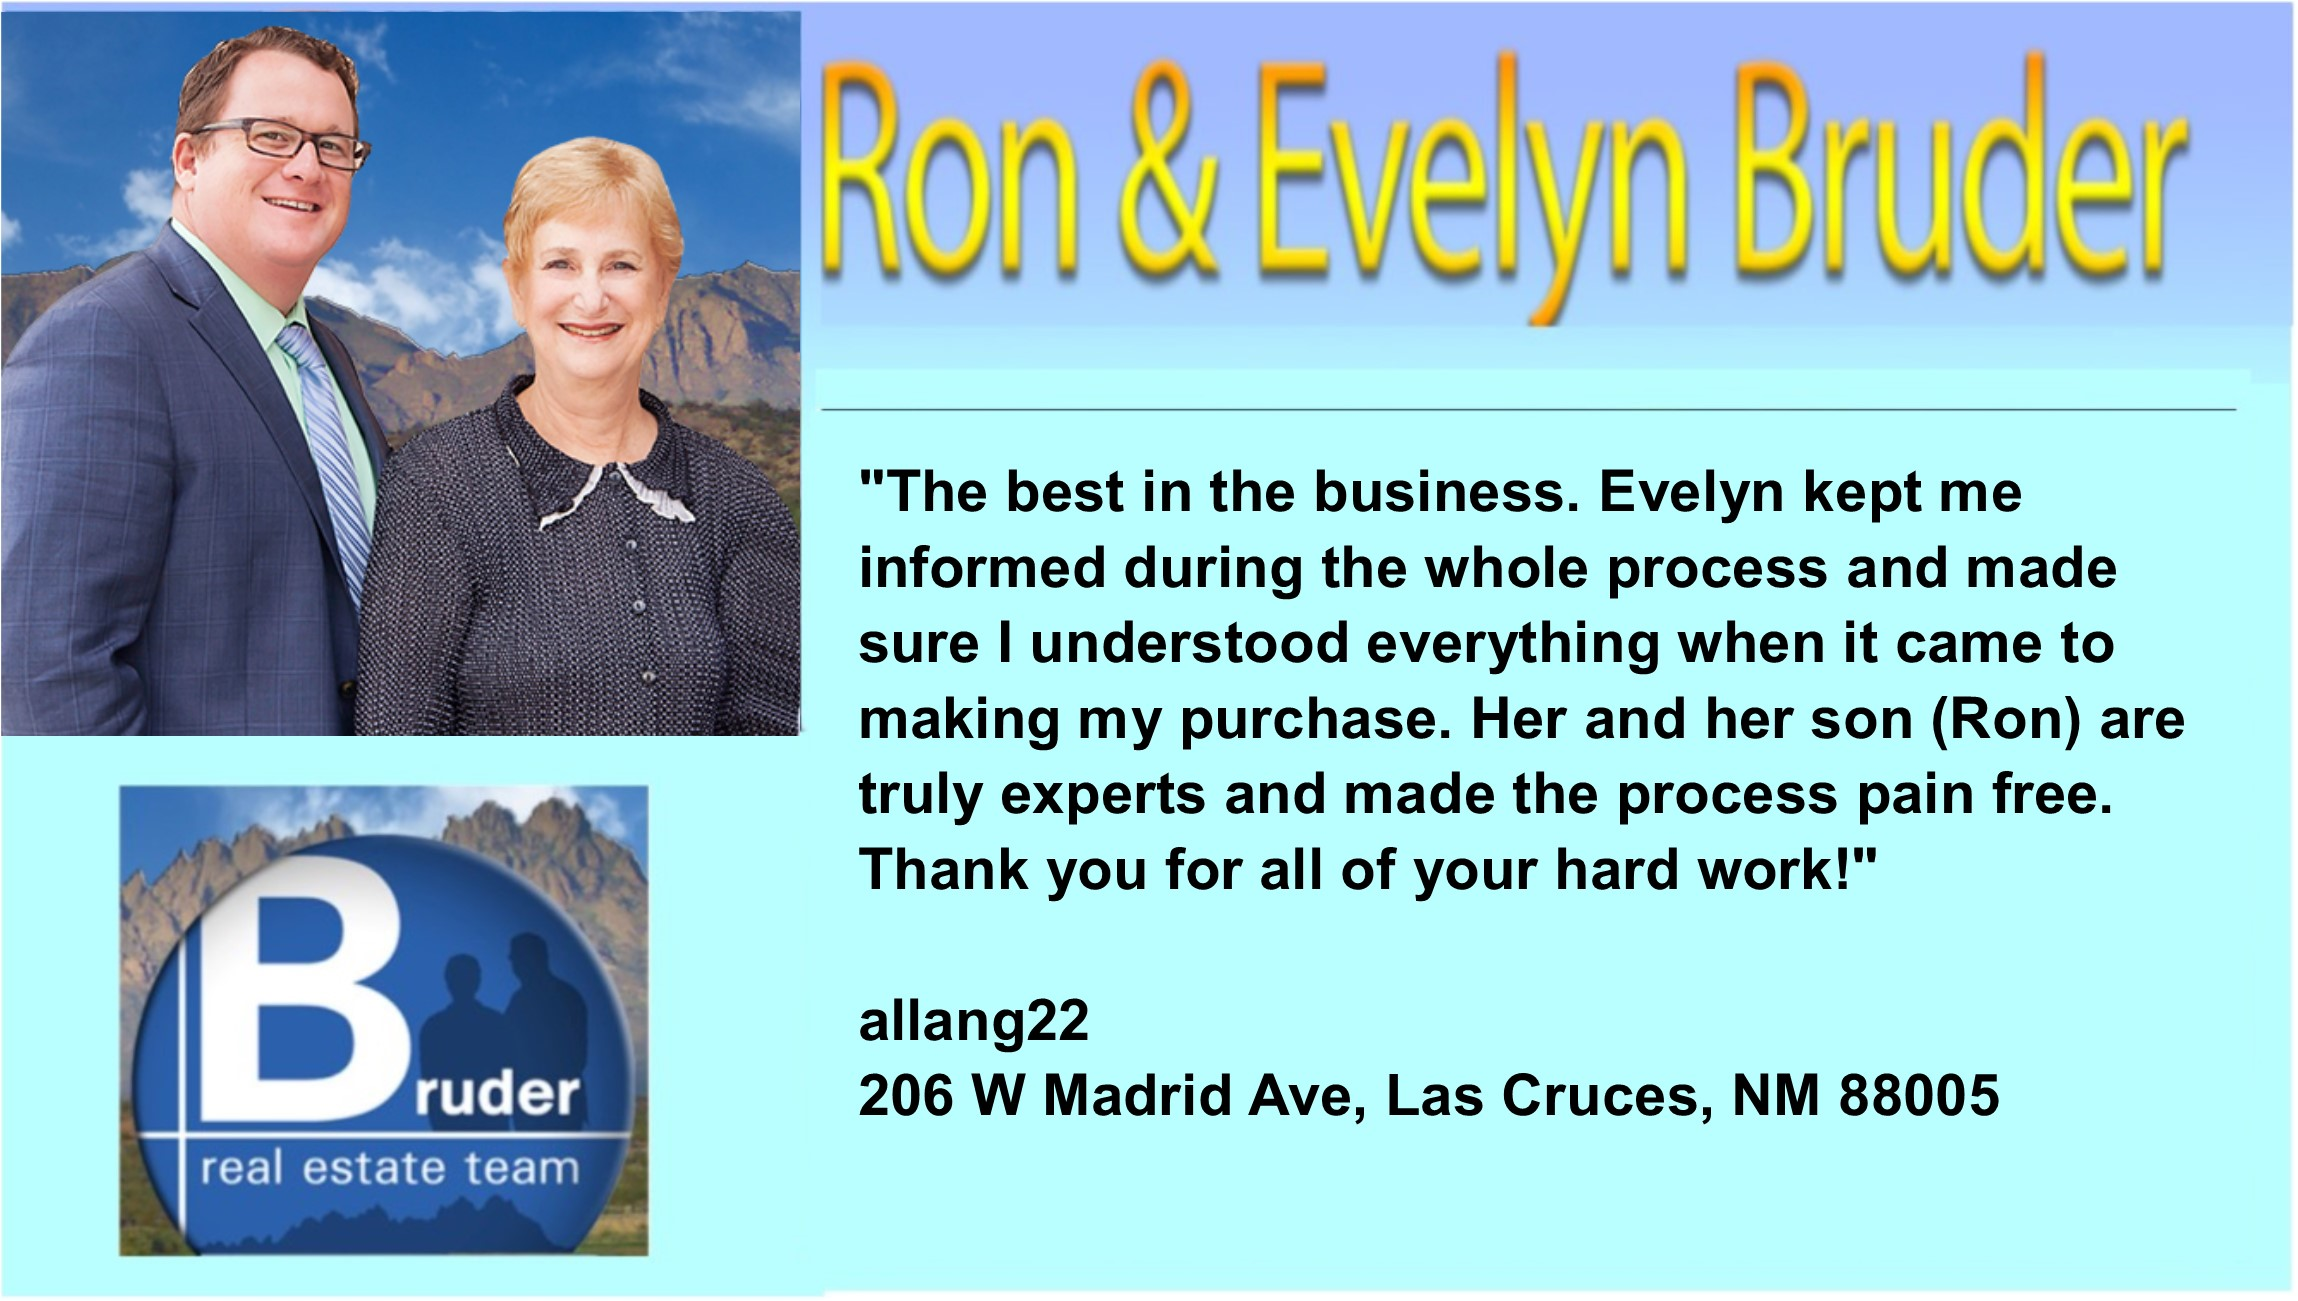 Ron was excellent - 5 star testimonial